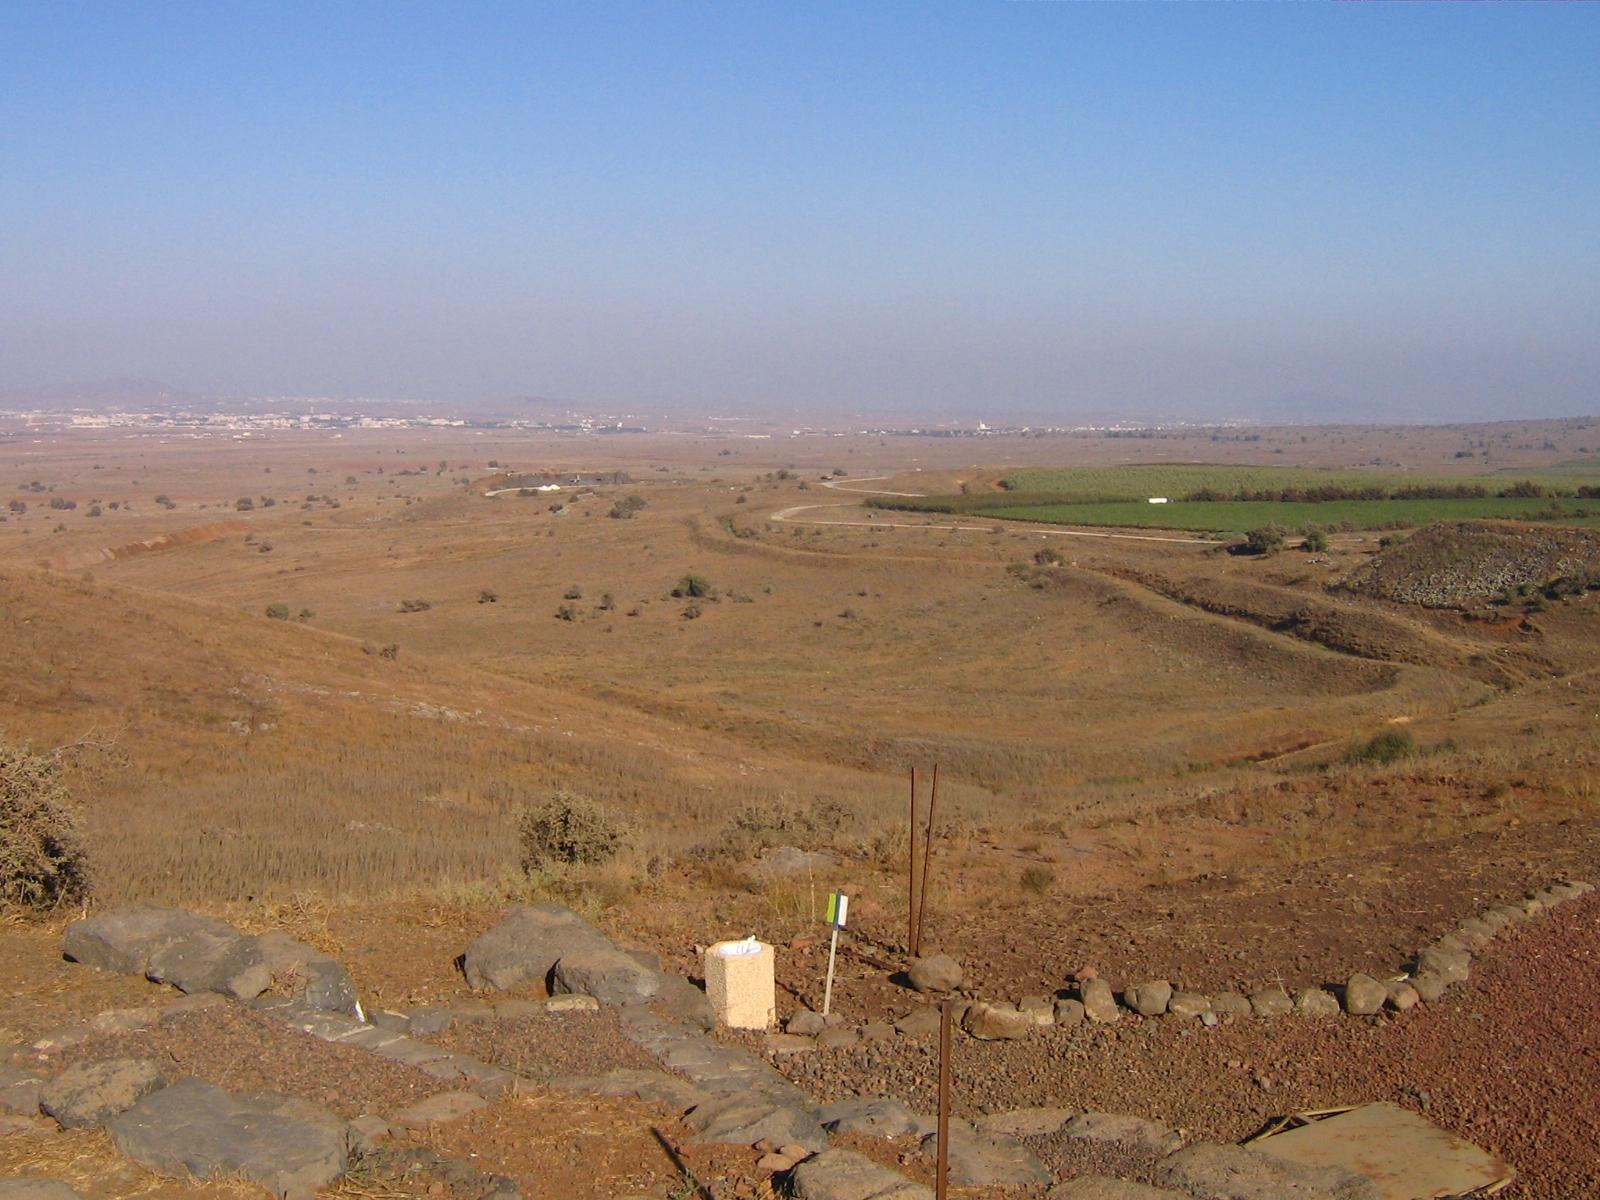 The Israeli-Syrian border in the Golan Heights. Credit: Wikimedia Commons.